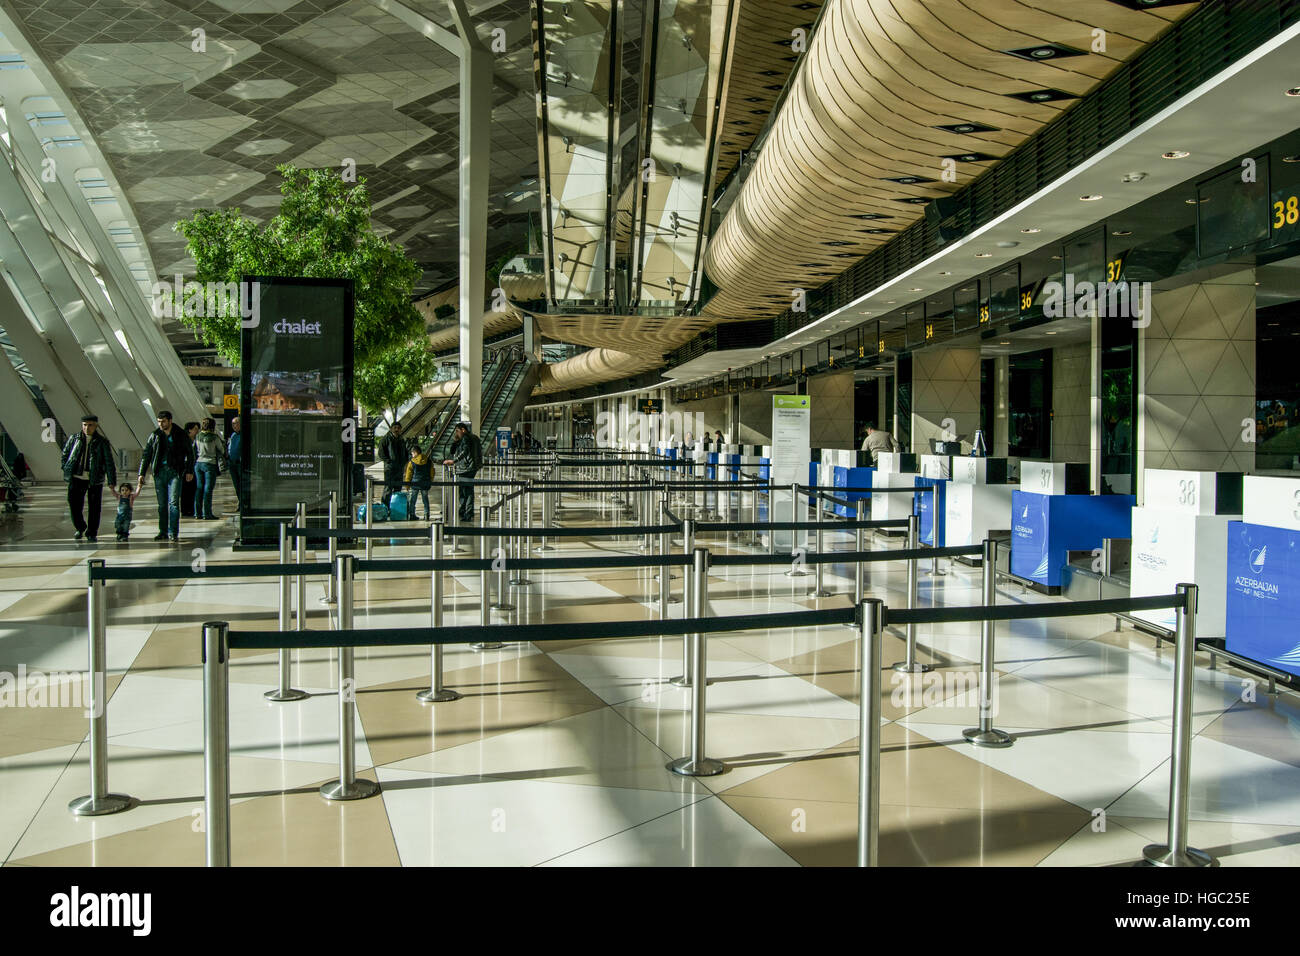 Heydar Aliyev International Airport interior Baku, Azerbaijan - Stock Image